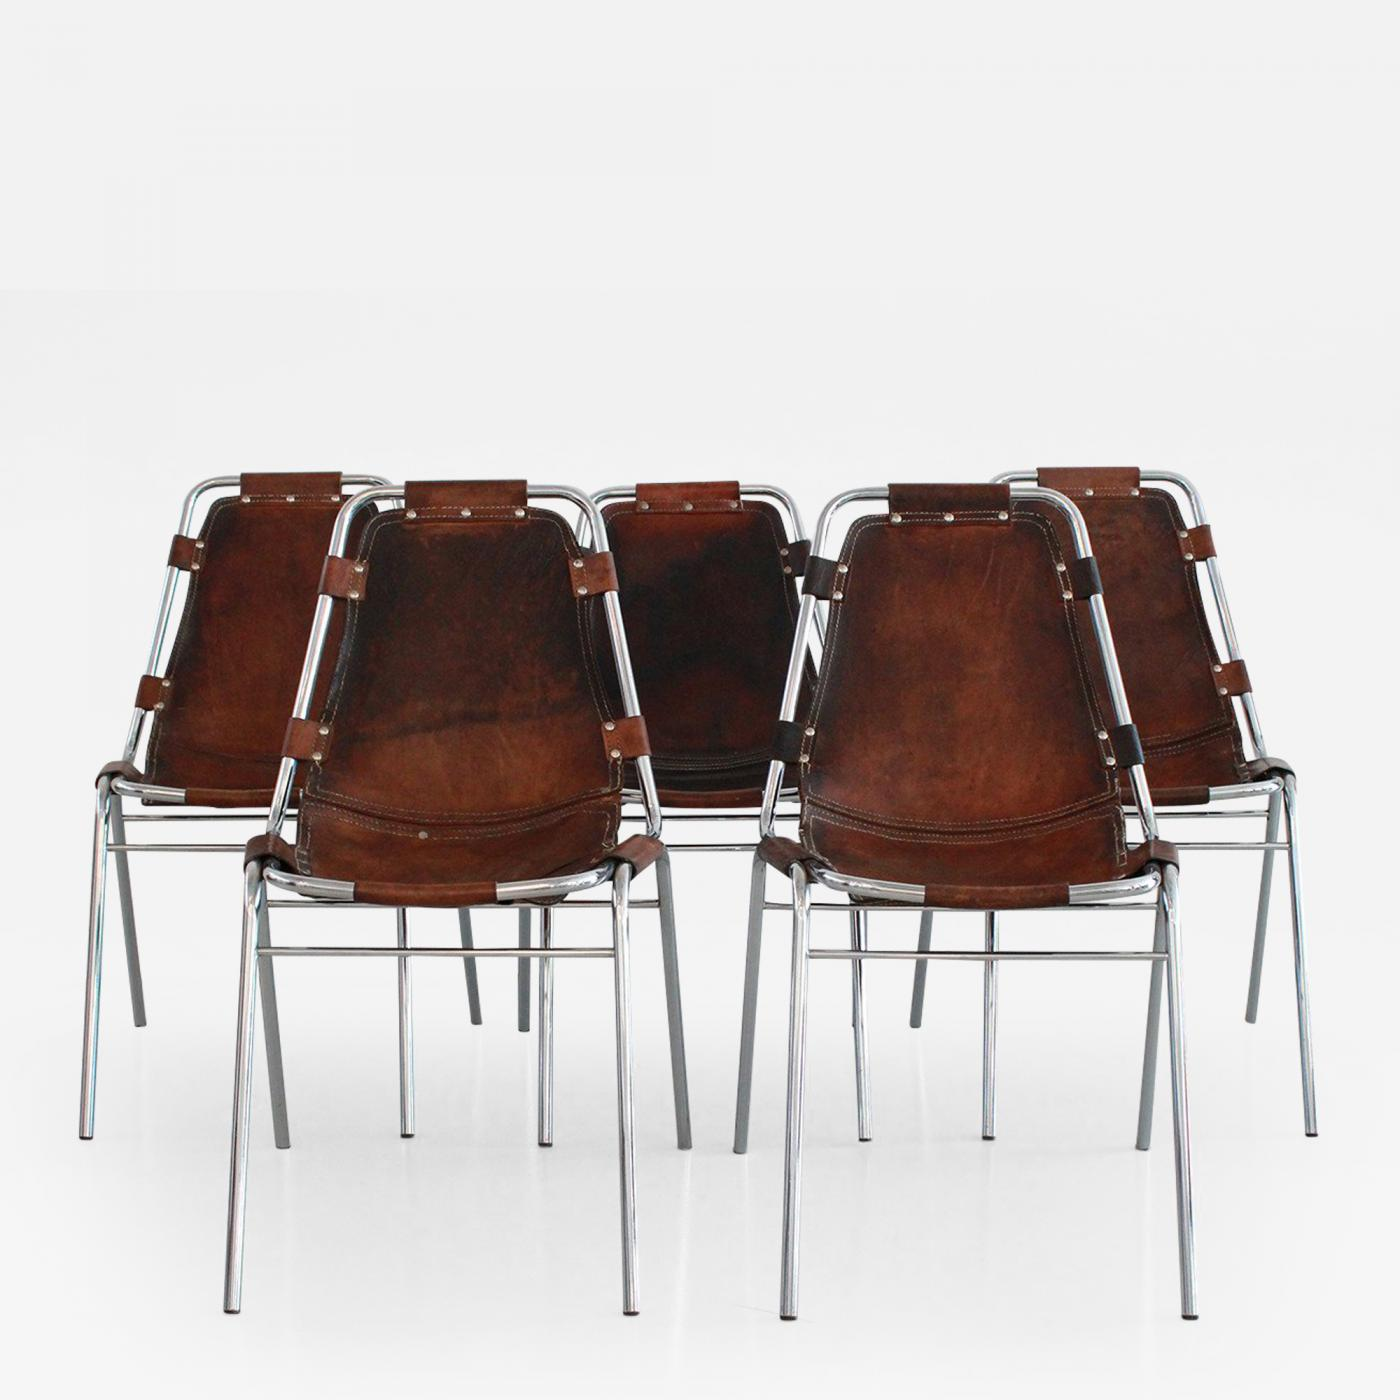 charlotte perriand les arcs chairs. Black Bedroom Furniture Sets. Home Design Ideas